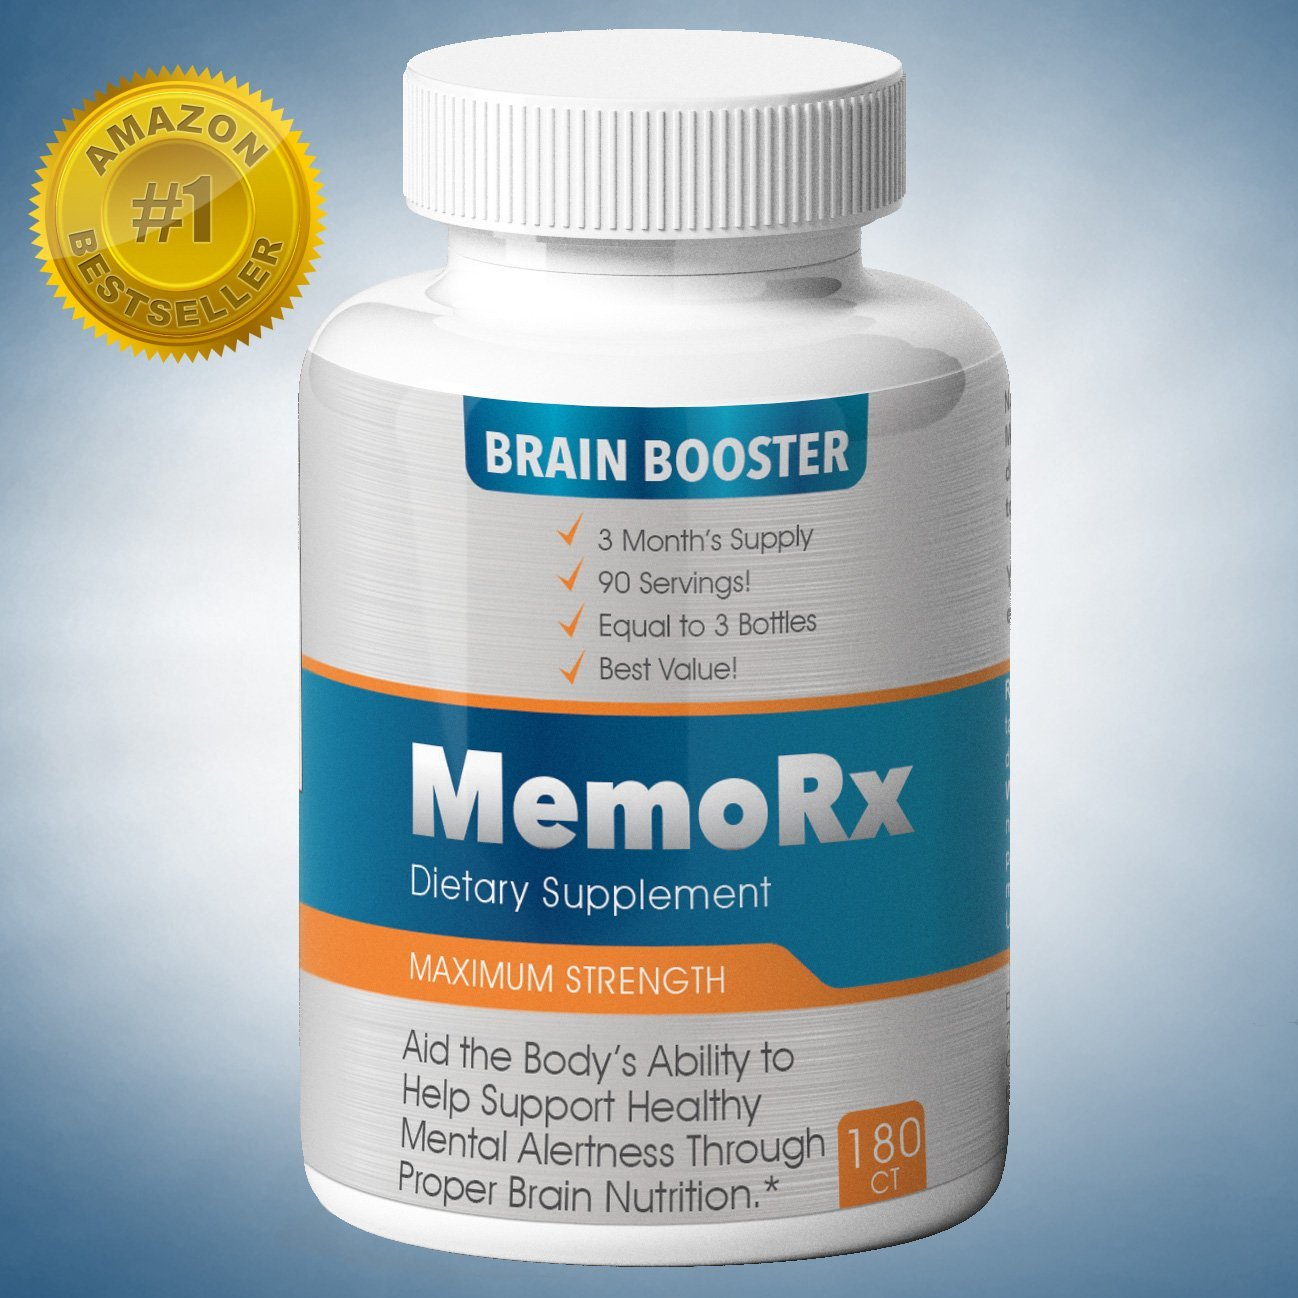 MemoRx Brain Booster 3 Month Supply [Best Value] 100 mg Bacopa Extract 10 mg Ginko Biloba Leaf Extract 100 mg DMAE 100 mg Asian Ginseng Root 100 mg L-Glutamine 10 mg Vinpocetine 200 mcg Huperzine A